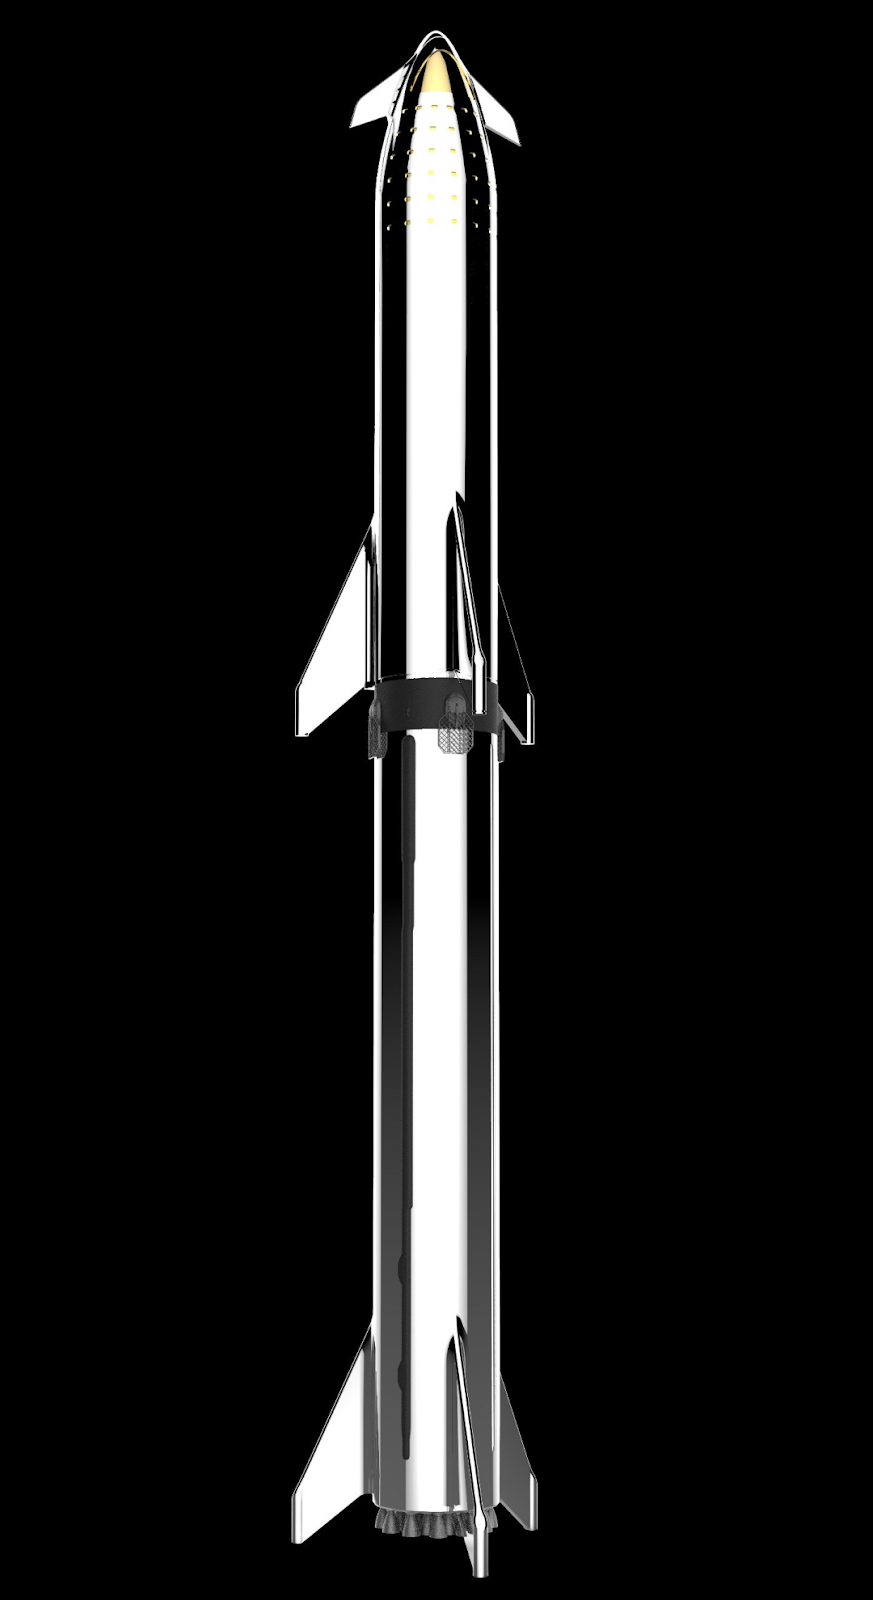 SpaceX Starship + Super Heavy block 1 mobile wallpaper by Reese Wilson